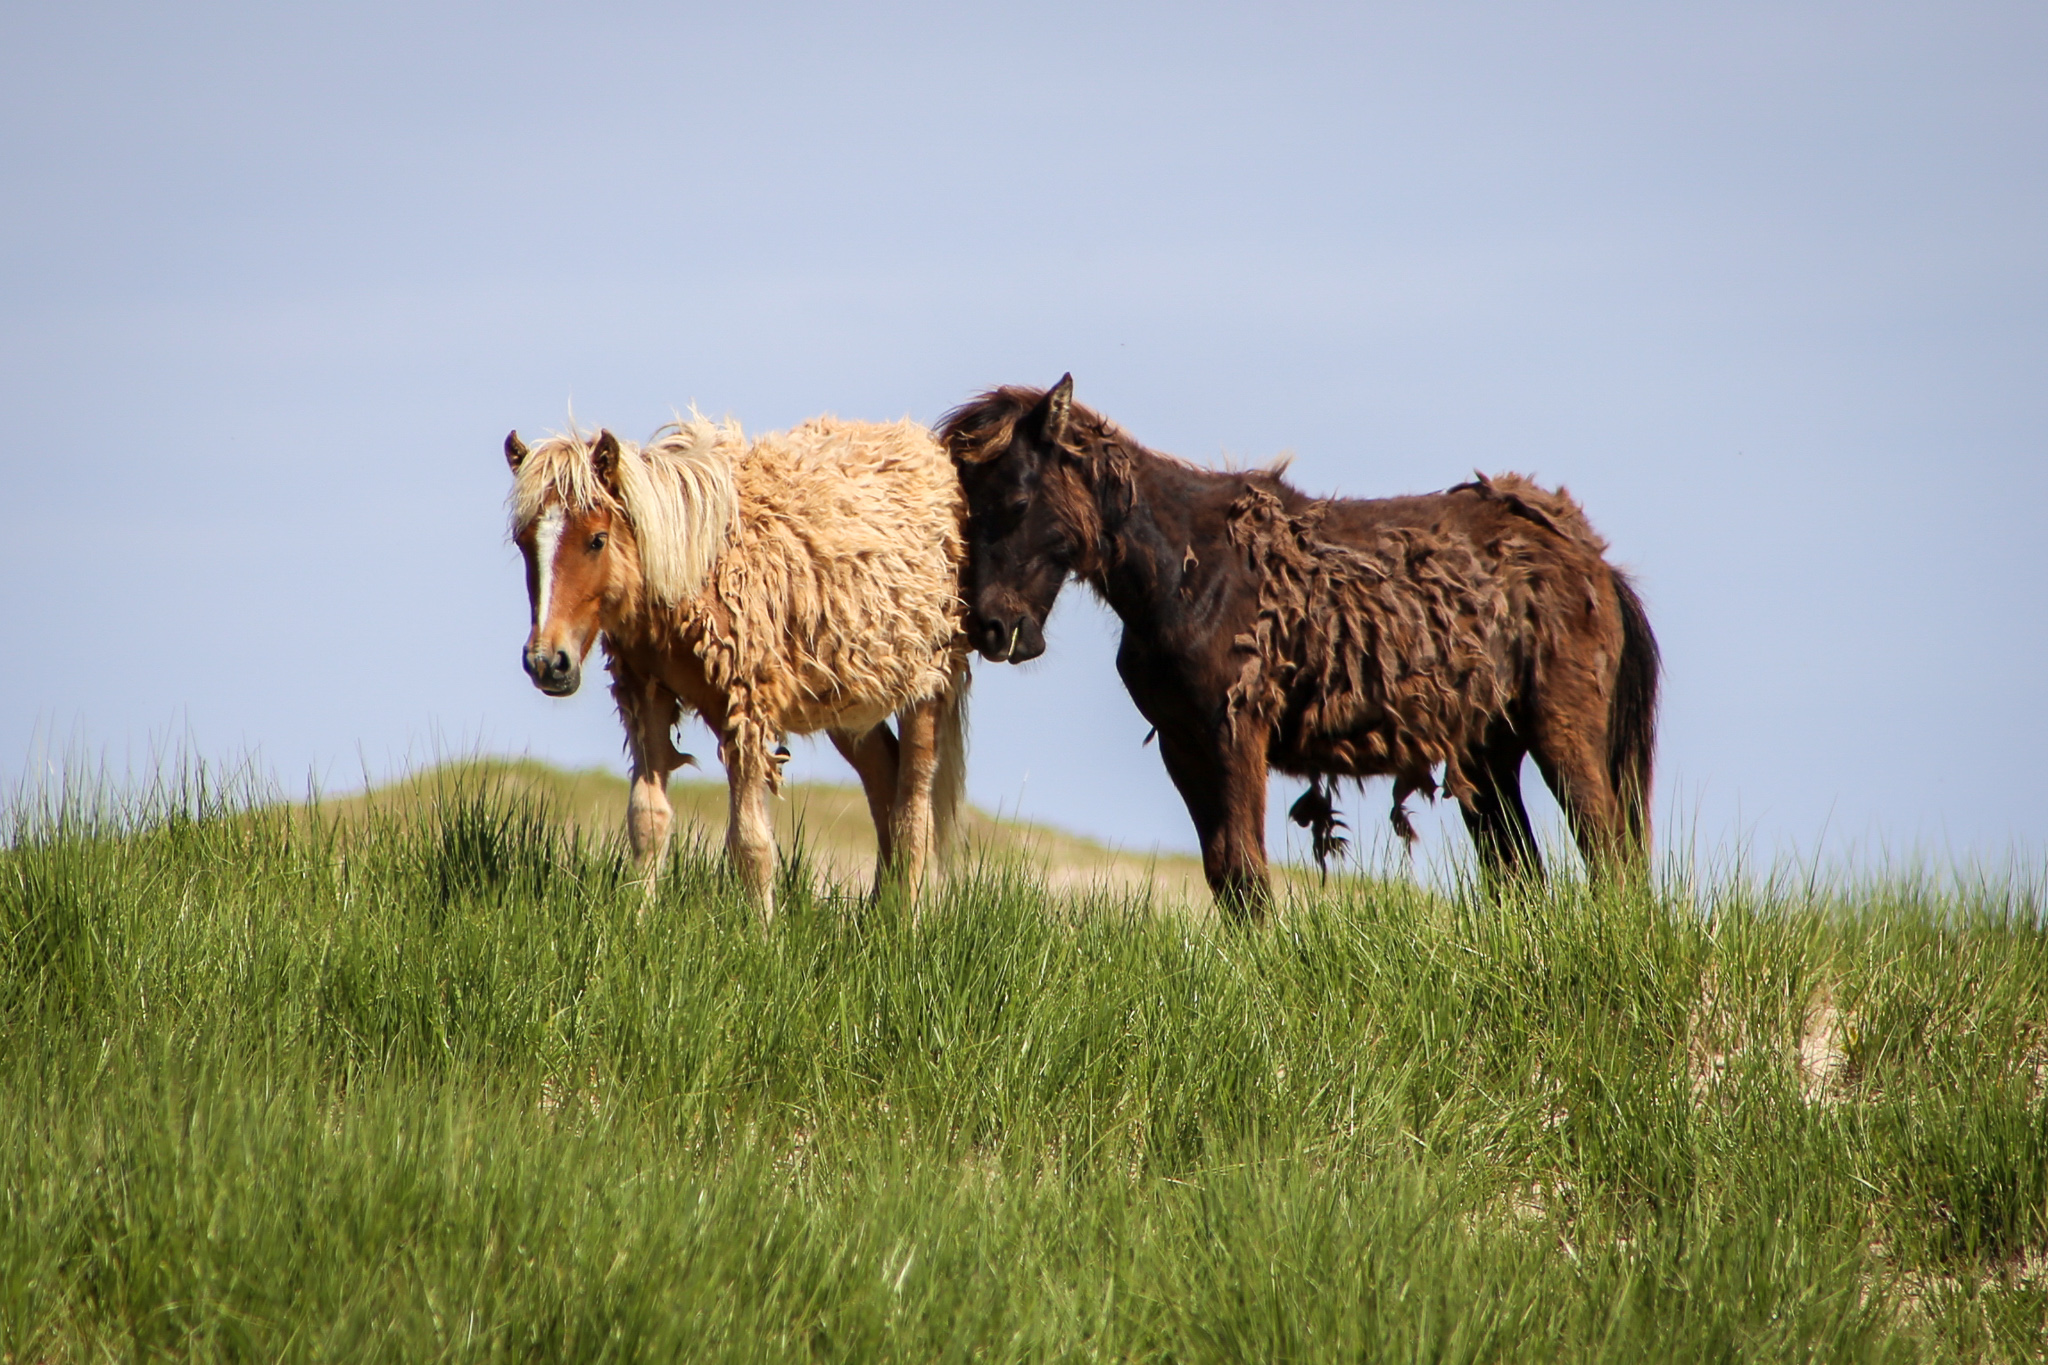 Horses on Sable Island, Nova Scotia